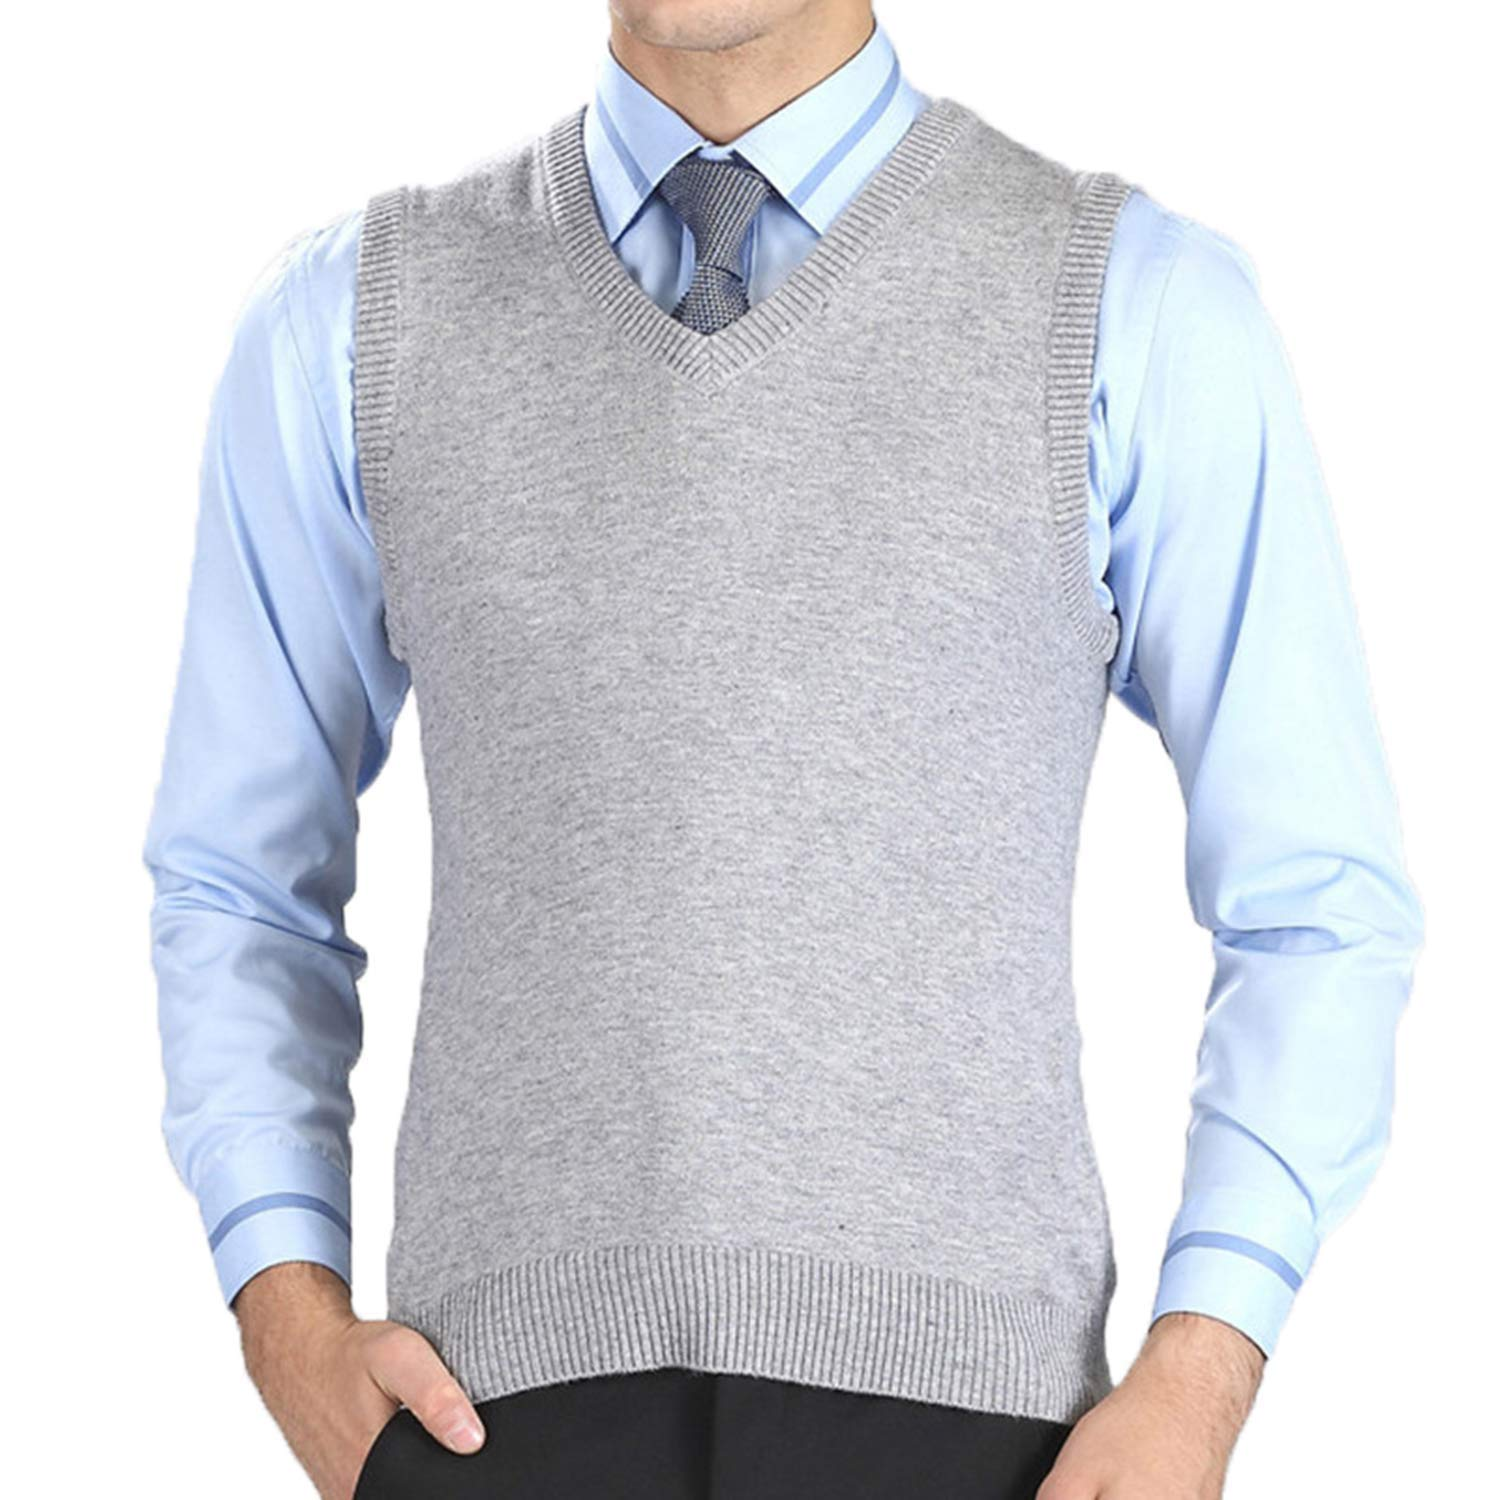 Robert Reyna Fashion Mens Vest Sweaters Casual Style Wool Knitted Business Men Sleeveless Vest Brown Gray Black